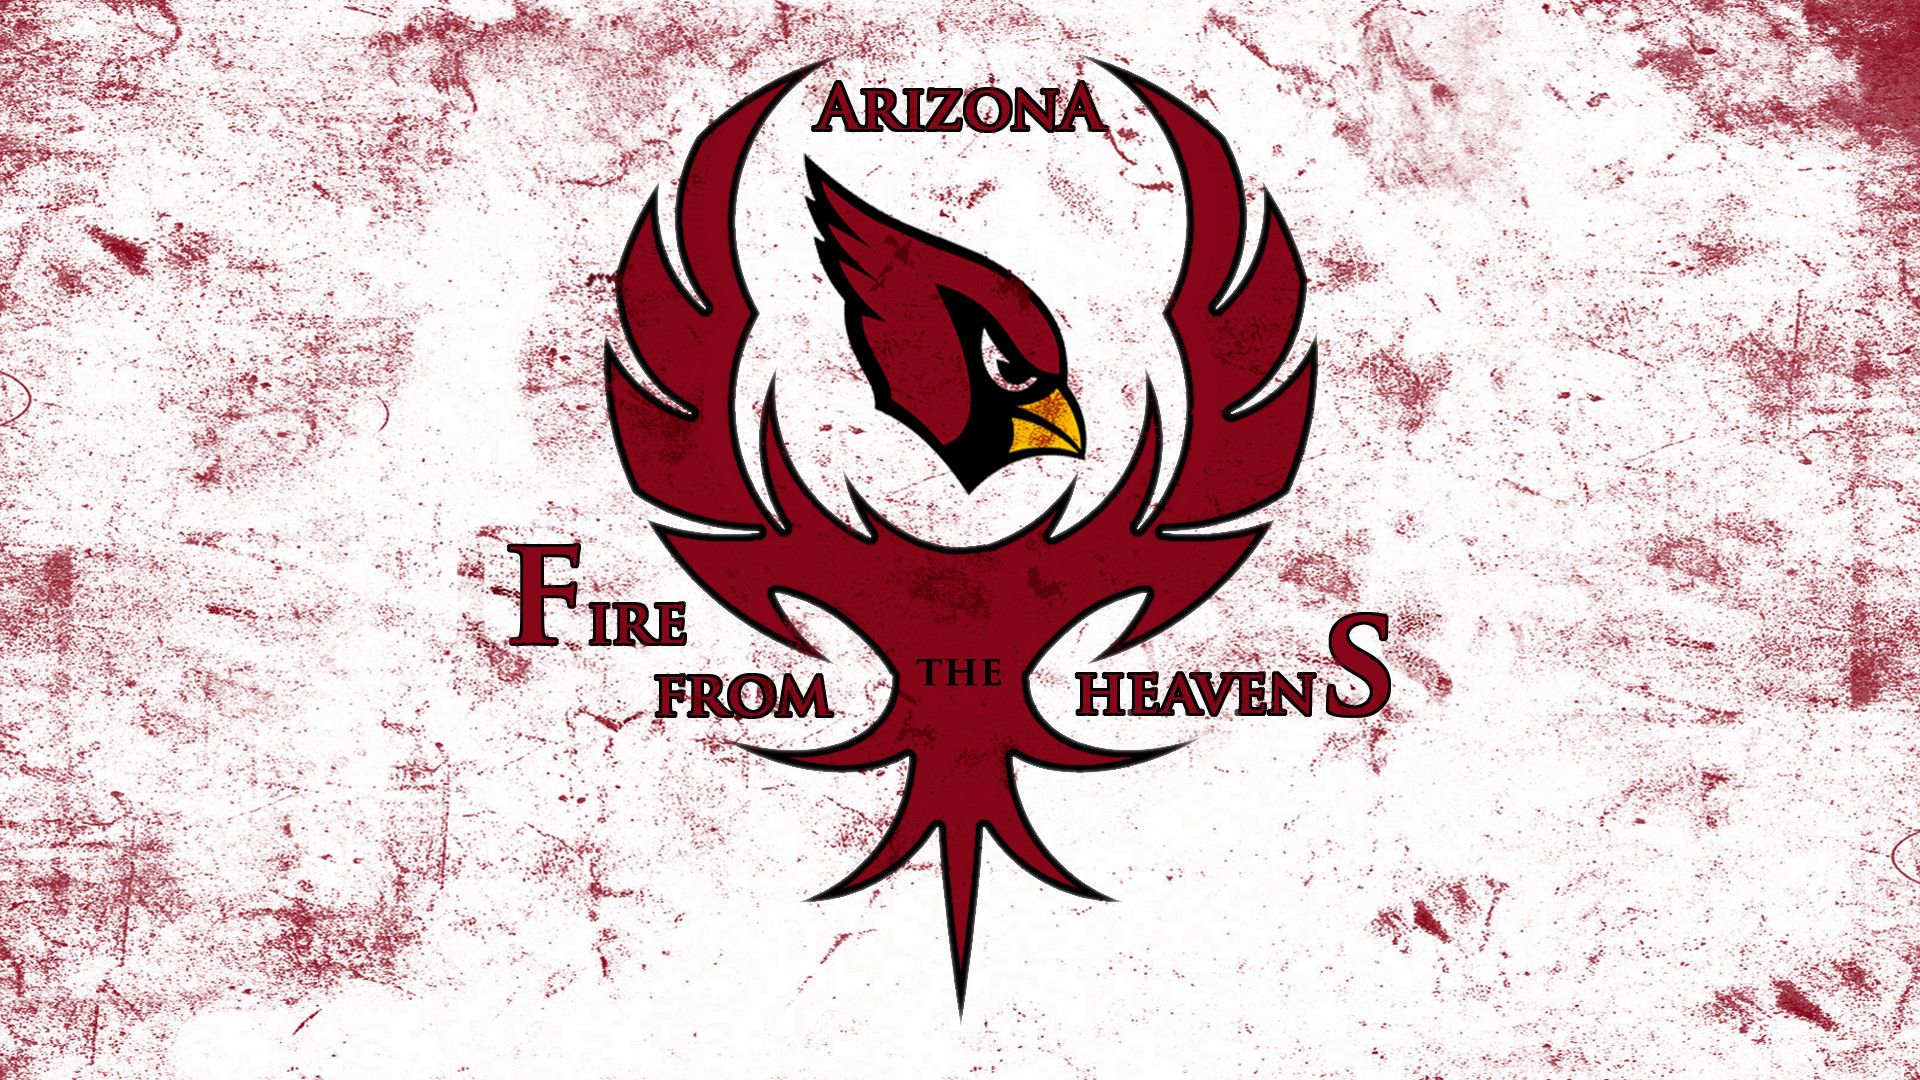 Cardinals Wallpaper Football Wallpapersafari Cardinals Wallpaper Arizona Cardinals Wallpaper Arizona Cardinals